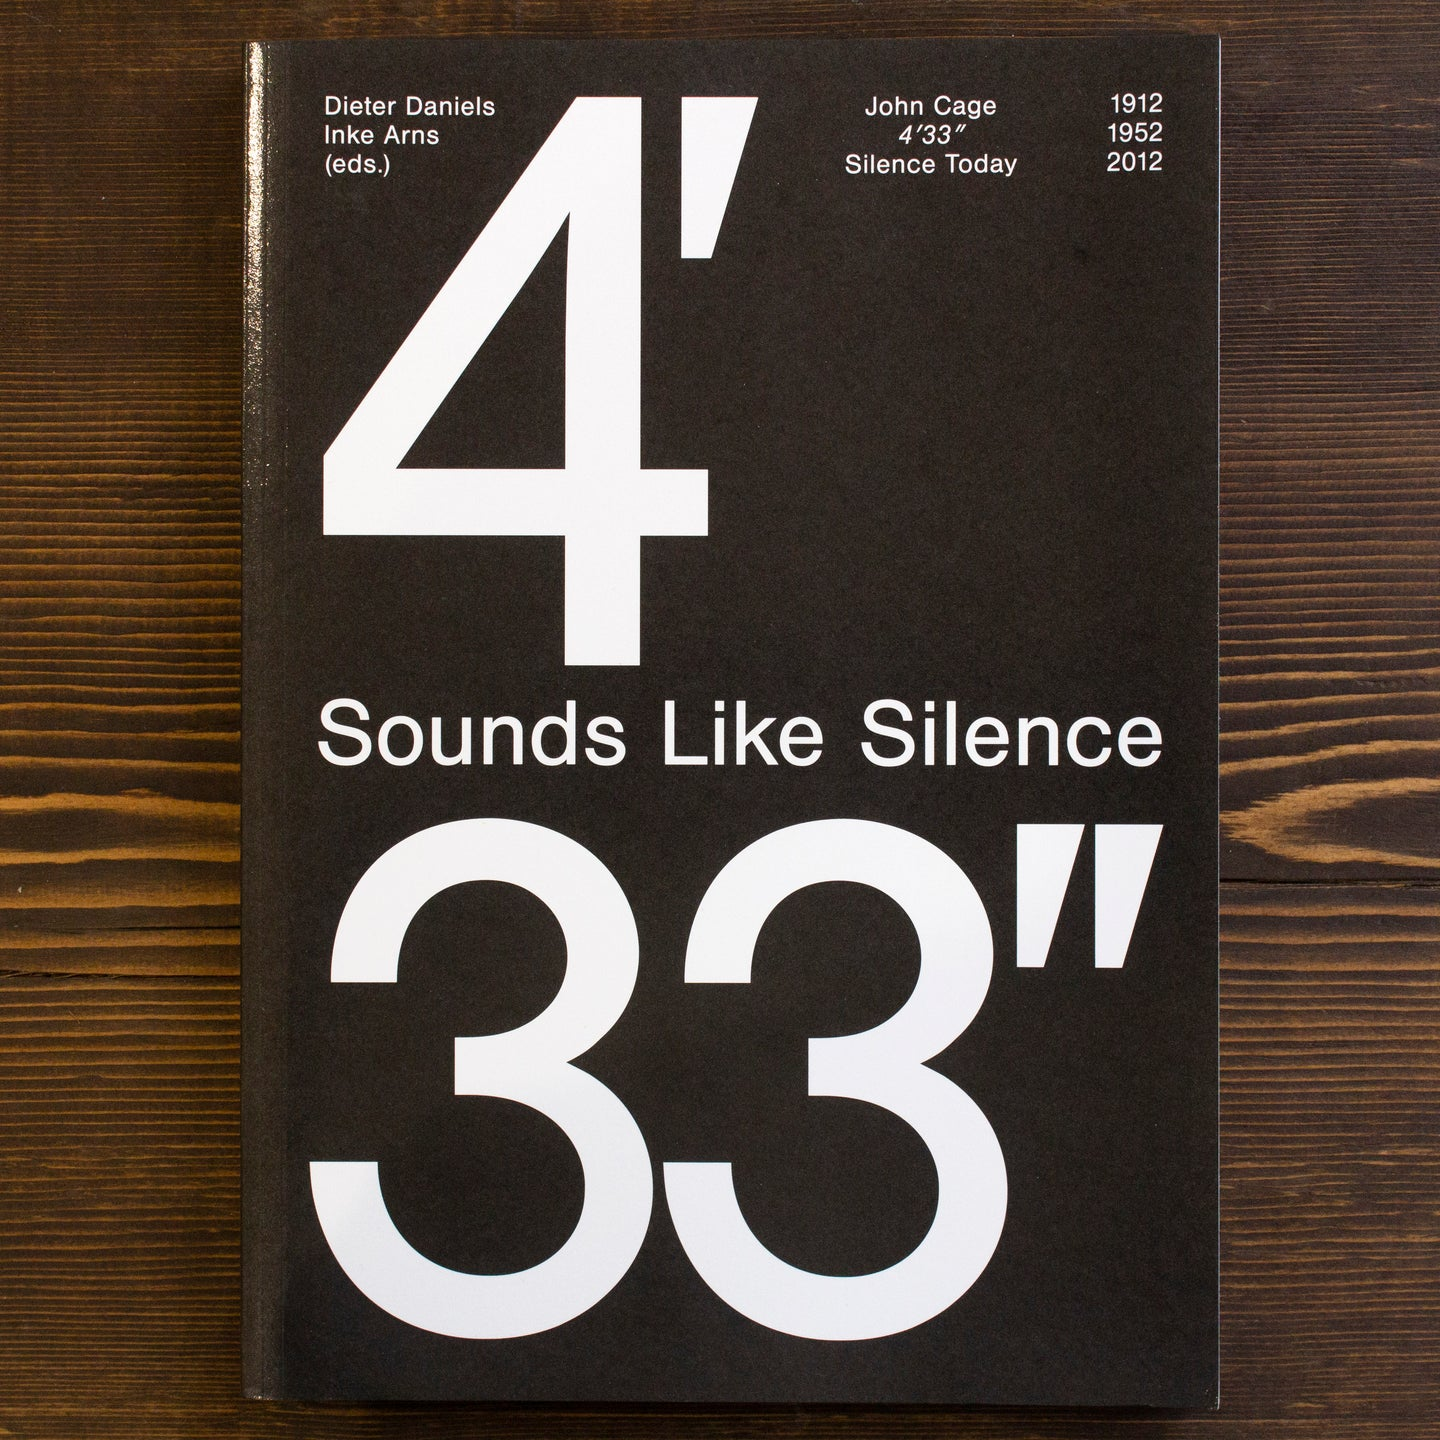 SOUNDS LIKE SILENCE - JOHN CAGE - 4' 33'' - SILENCE TODAY